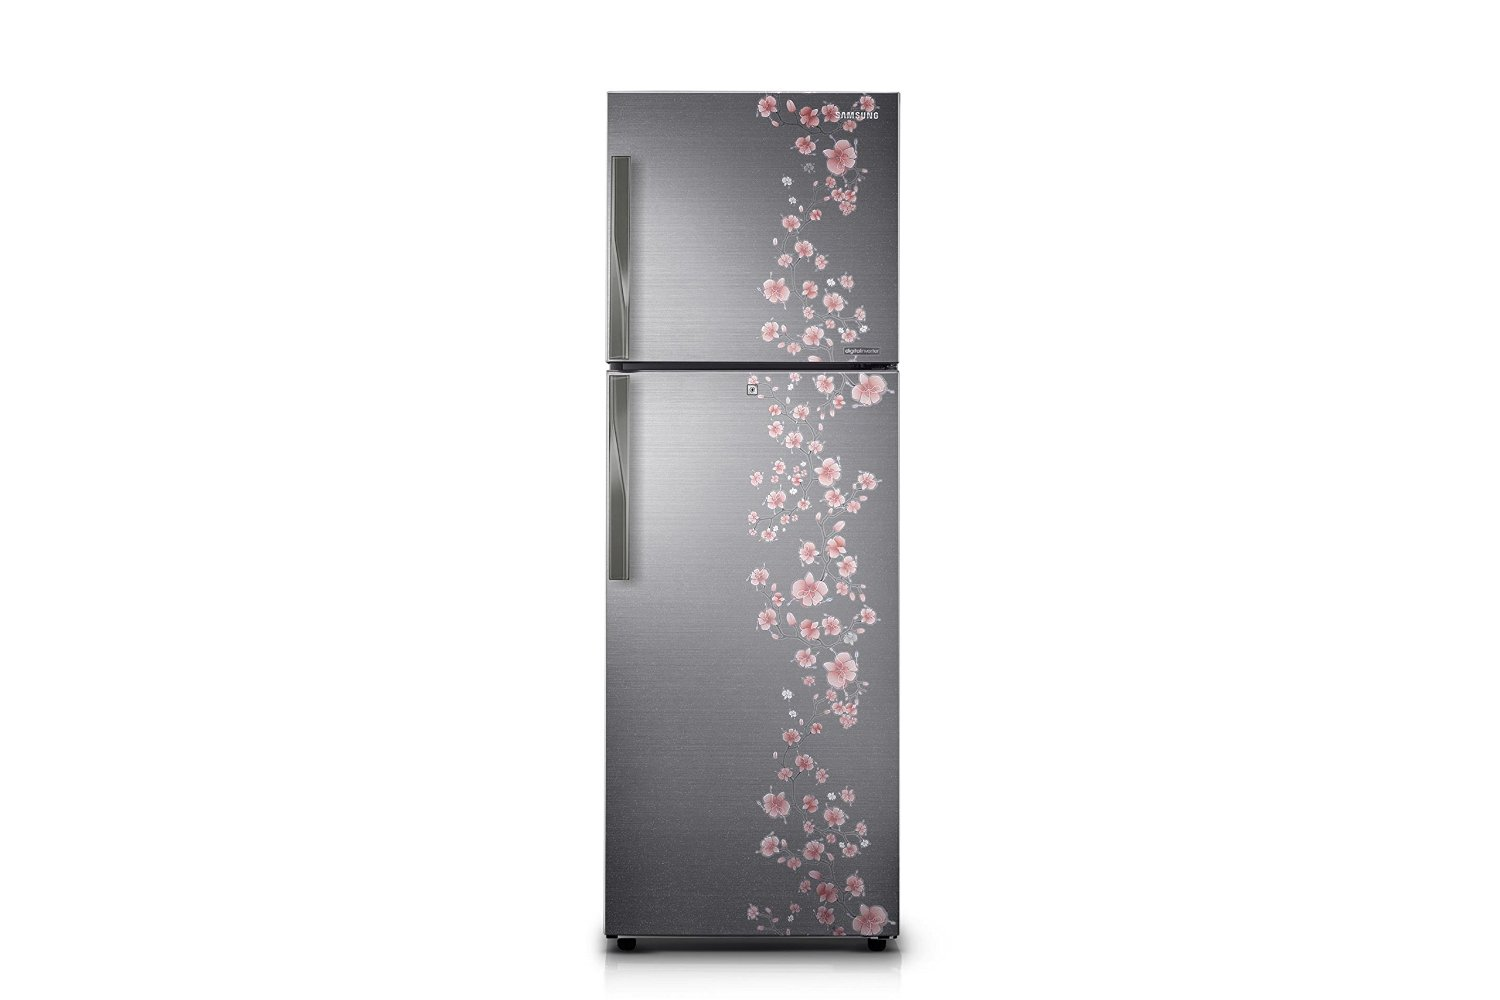 Samsung RT29HAJSALX/TL 275 Litres Double Door Frost Free Refrigerator  Orcherry Peach Silver